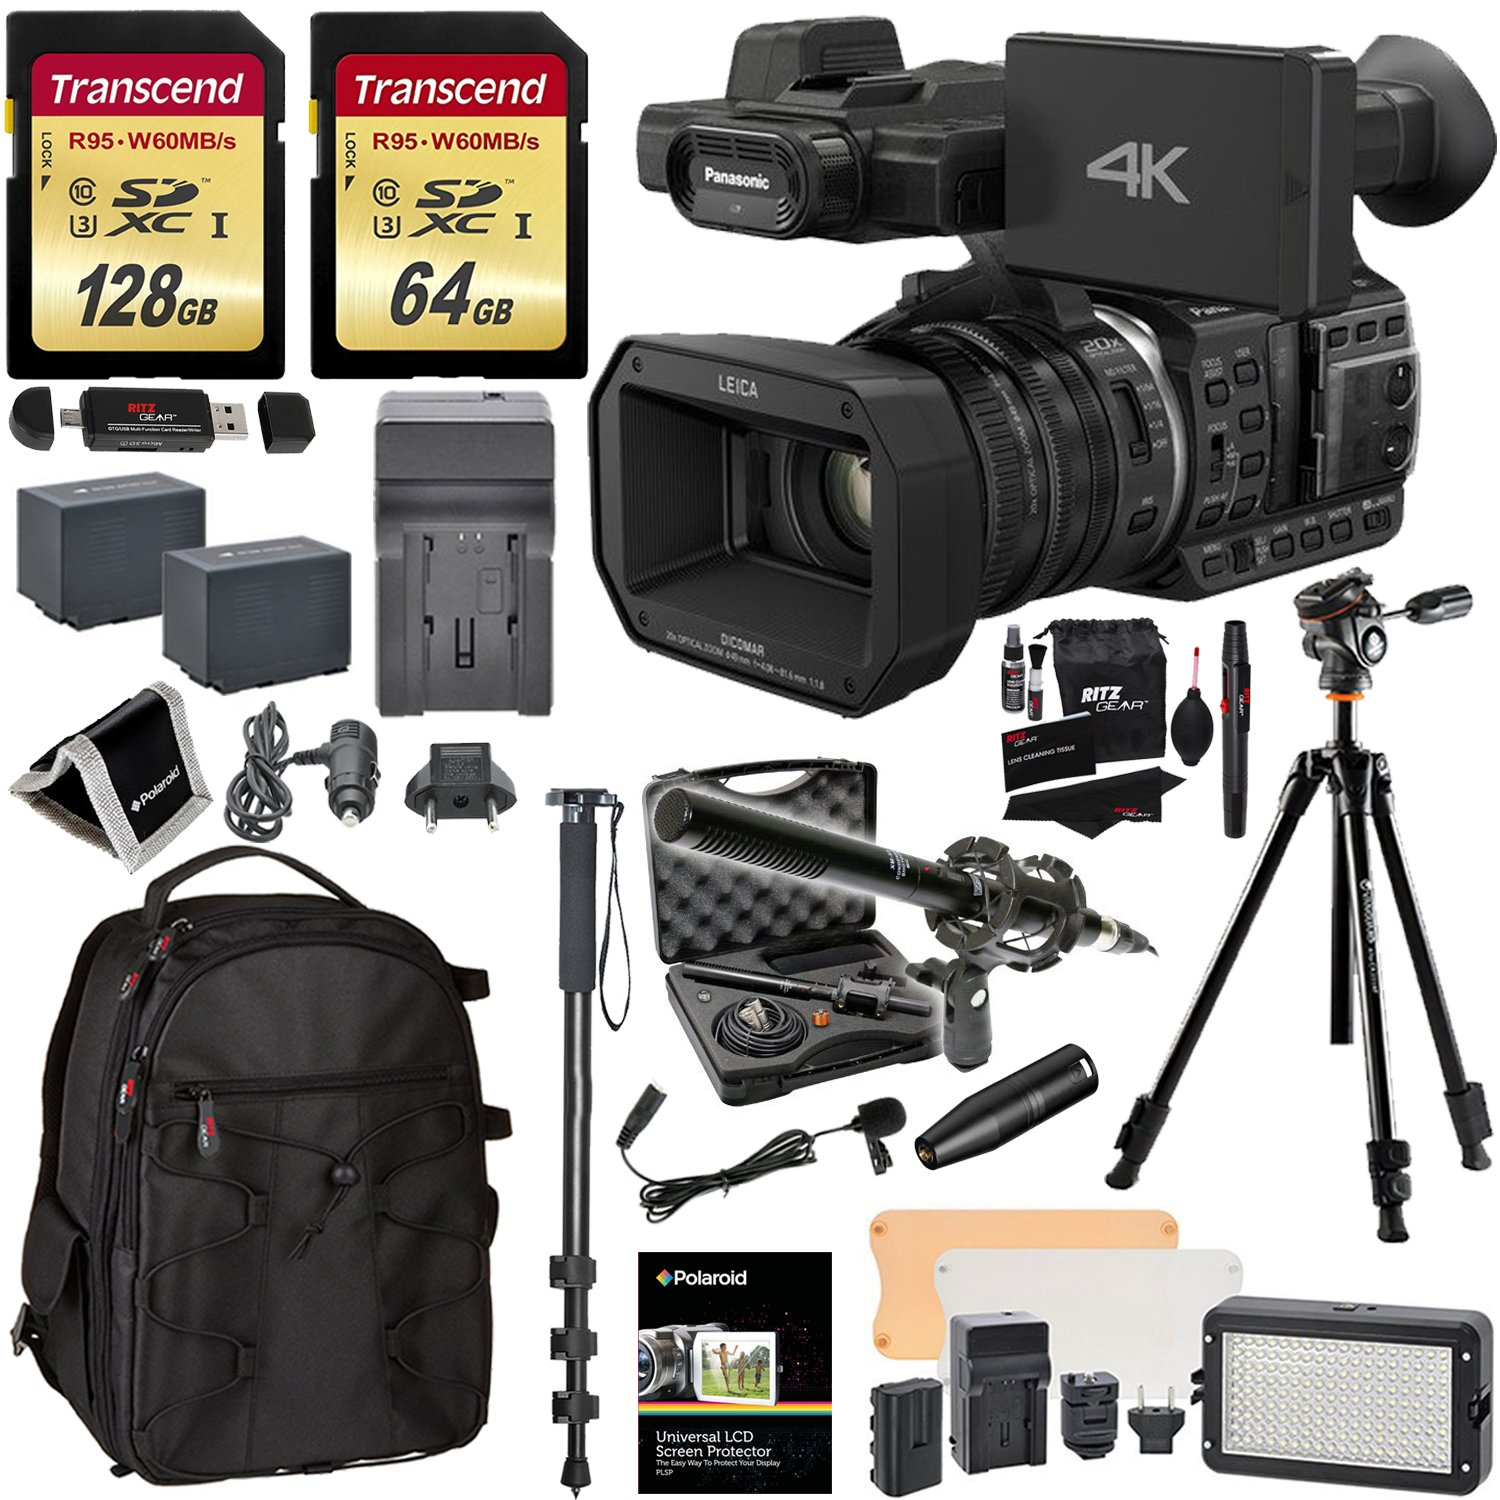 Panasonic HC-X1000 4K-60p/50p Camcorder with High-Powered 20x Optical Zoom and Professional Functions, Transcend 128 GB U3 SDXC, 64GB Card + Polaroid Pro Video Microphone + VANGUARD Tripod Bundle